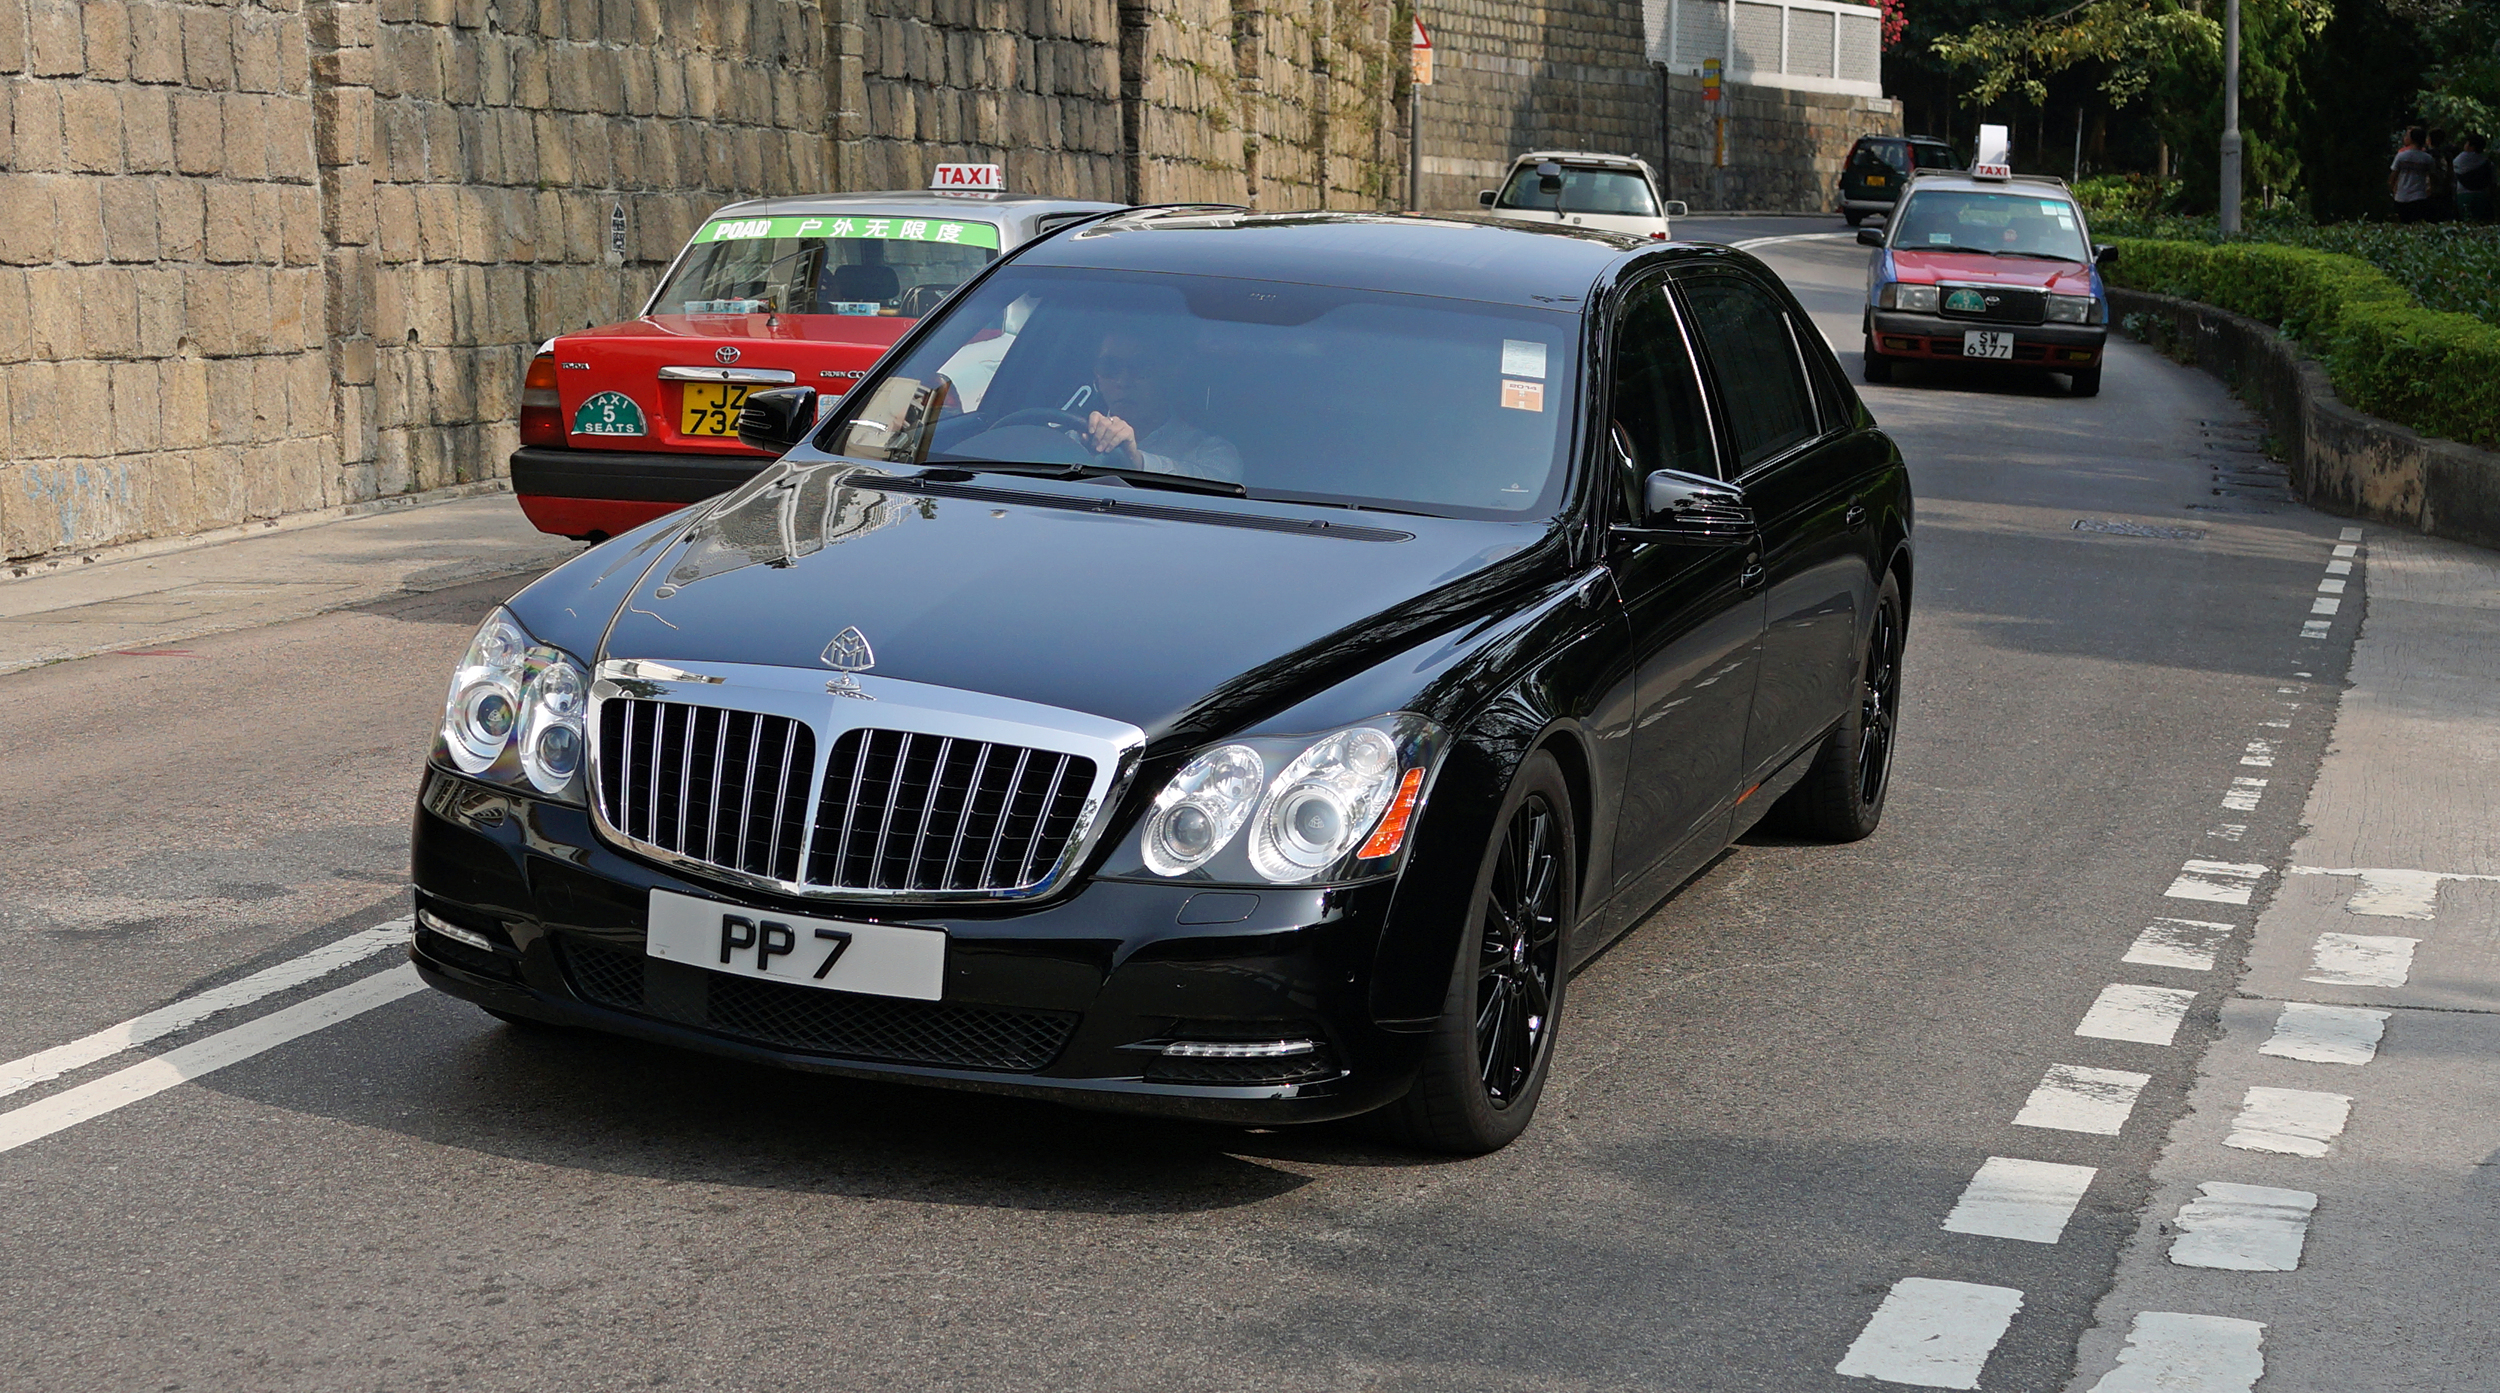 This is probably my favourite Maybach in Hong Kong.. pity they do not make it anymore. It is favoured by our billionaires but I have to say it is NOT discreet, this car is huge!